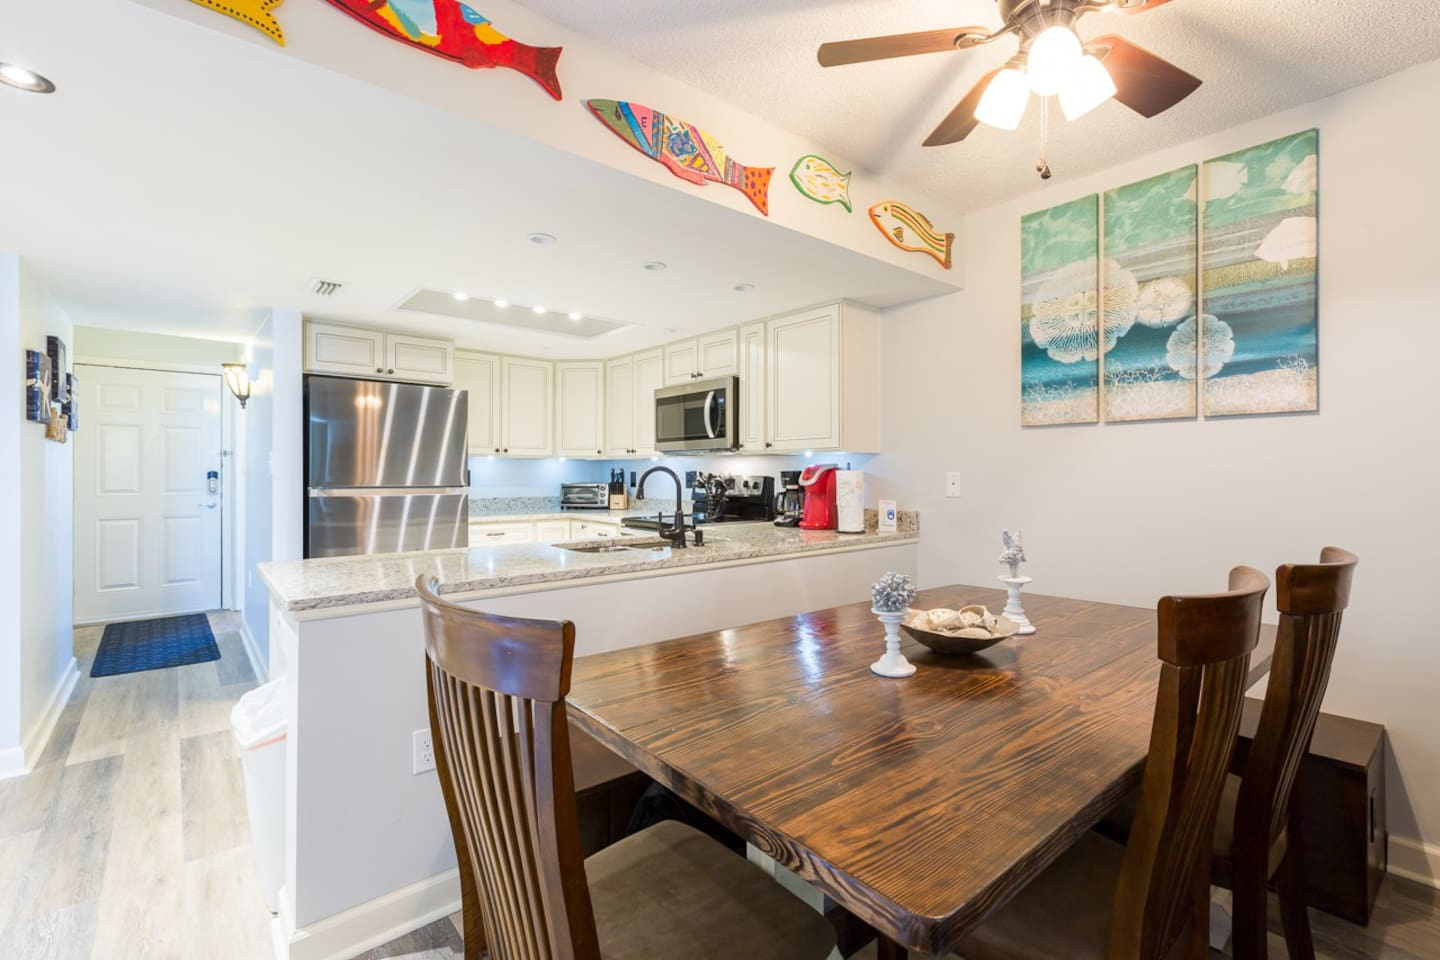 Kitchen totally remodeled February 2018, all new stainless appliances & granite